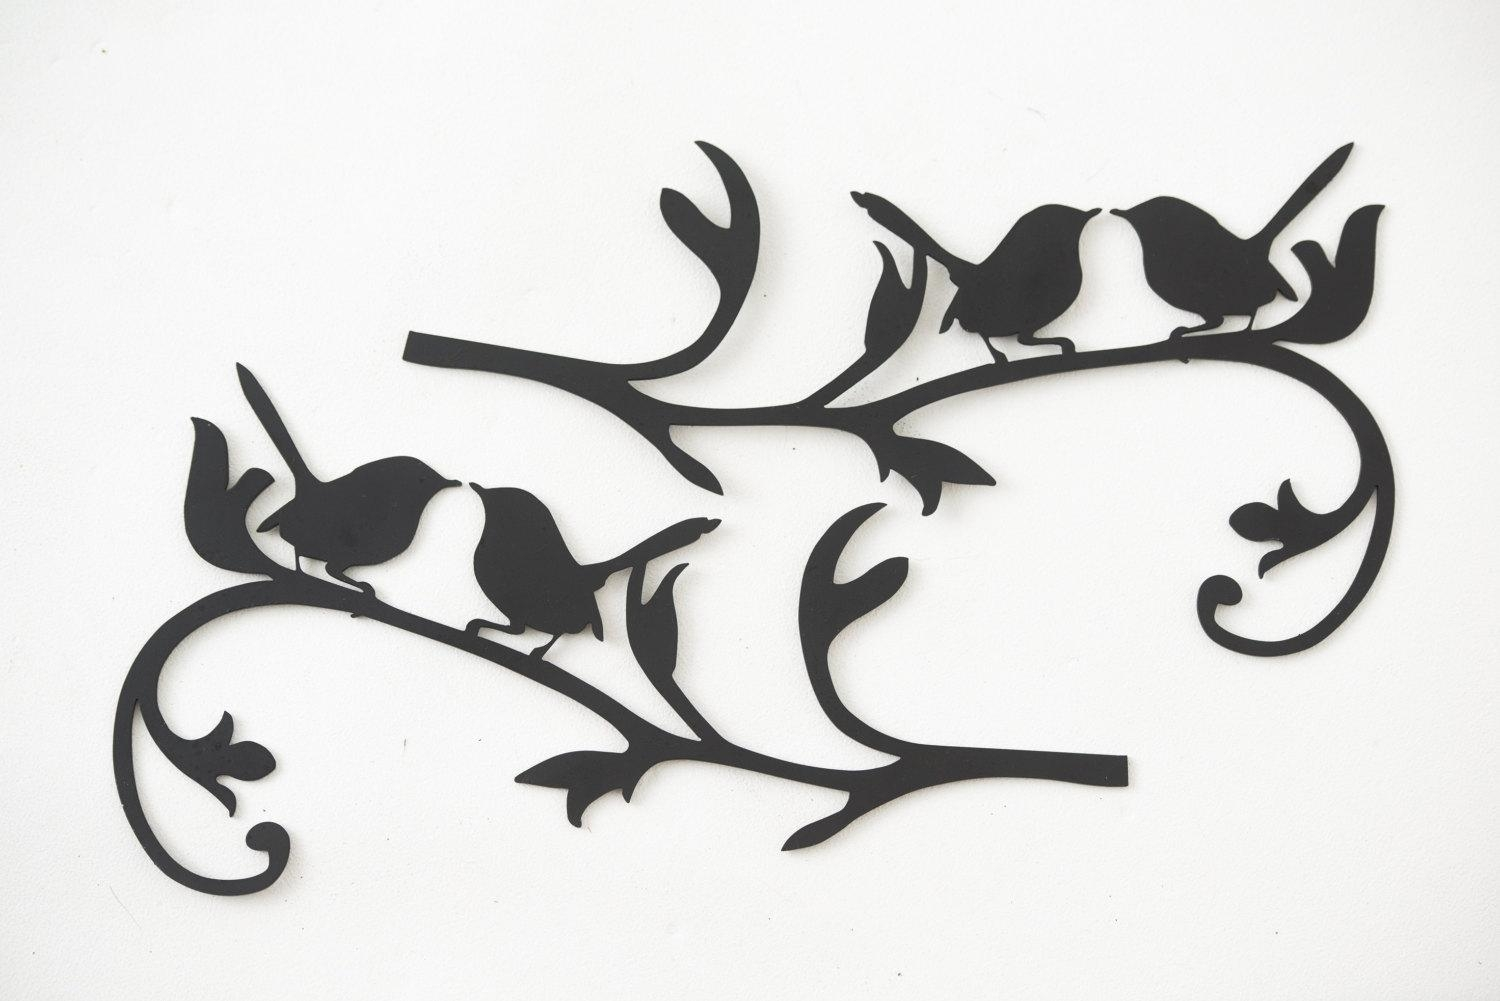 Wall Art Designs: Metal Bird Wall Art Hand Drawn And Laser Cut With Metal Flying Birds Wall Art (View 12 of 20)